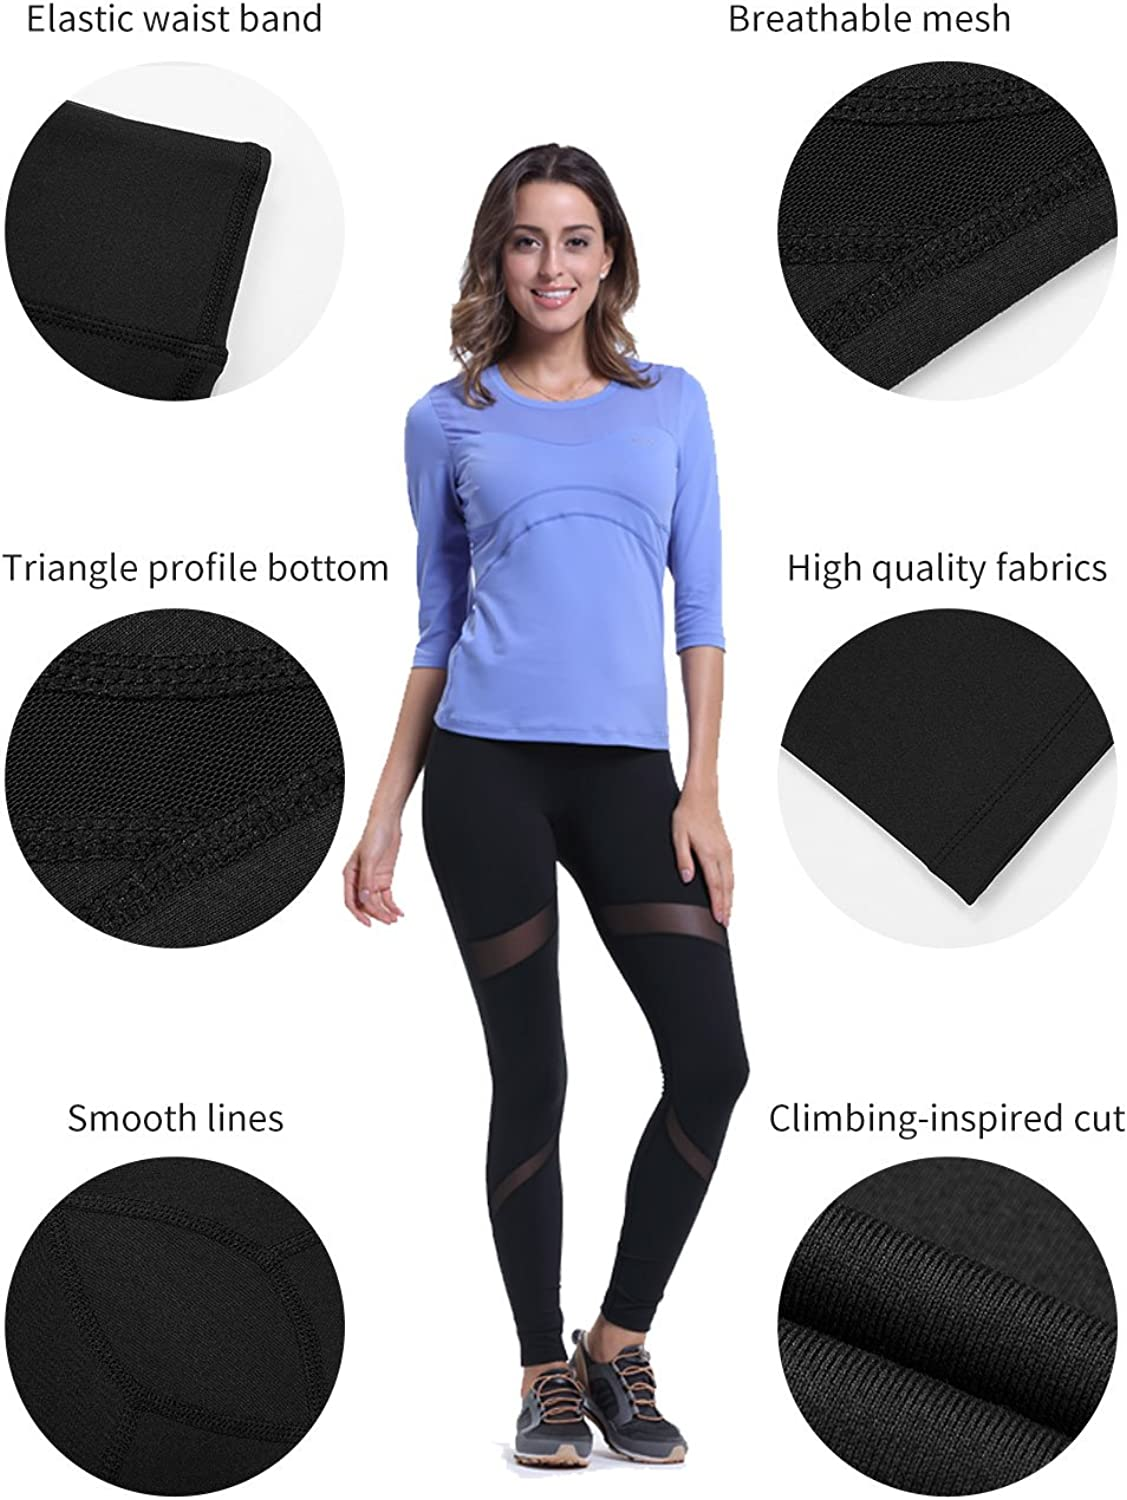 ZOANO Womens Mesh Yoga Legging Stretchy Pants Women Tummy Control Workout Running Gym Tights for Women